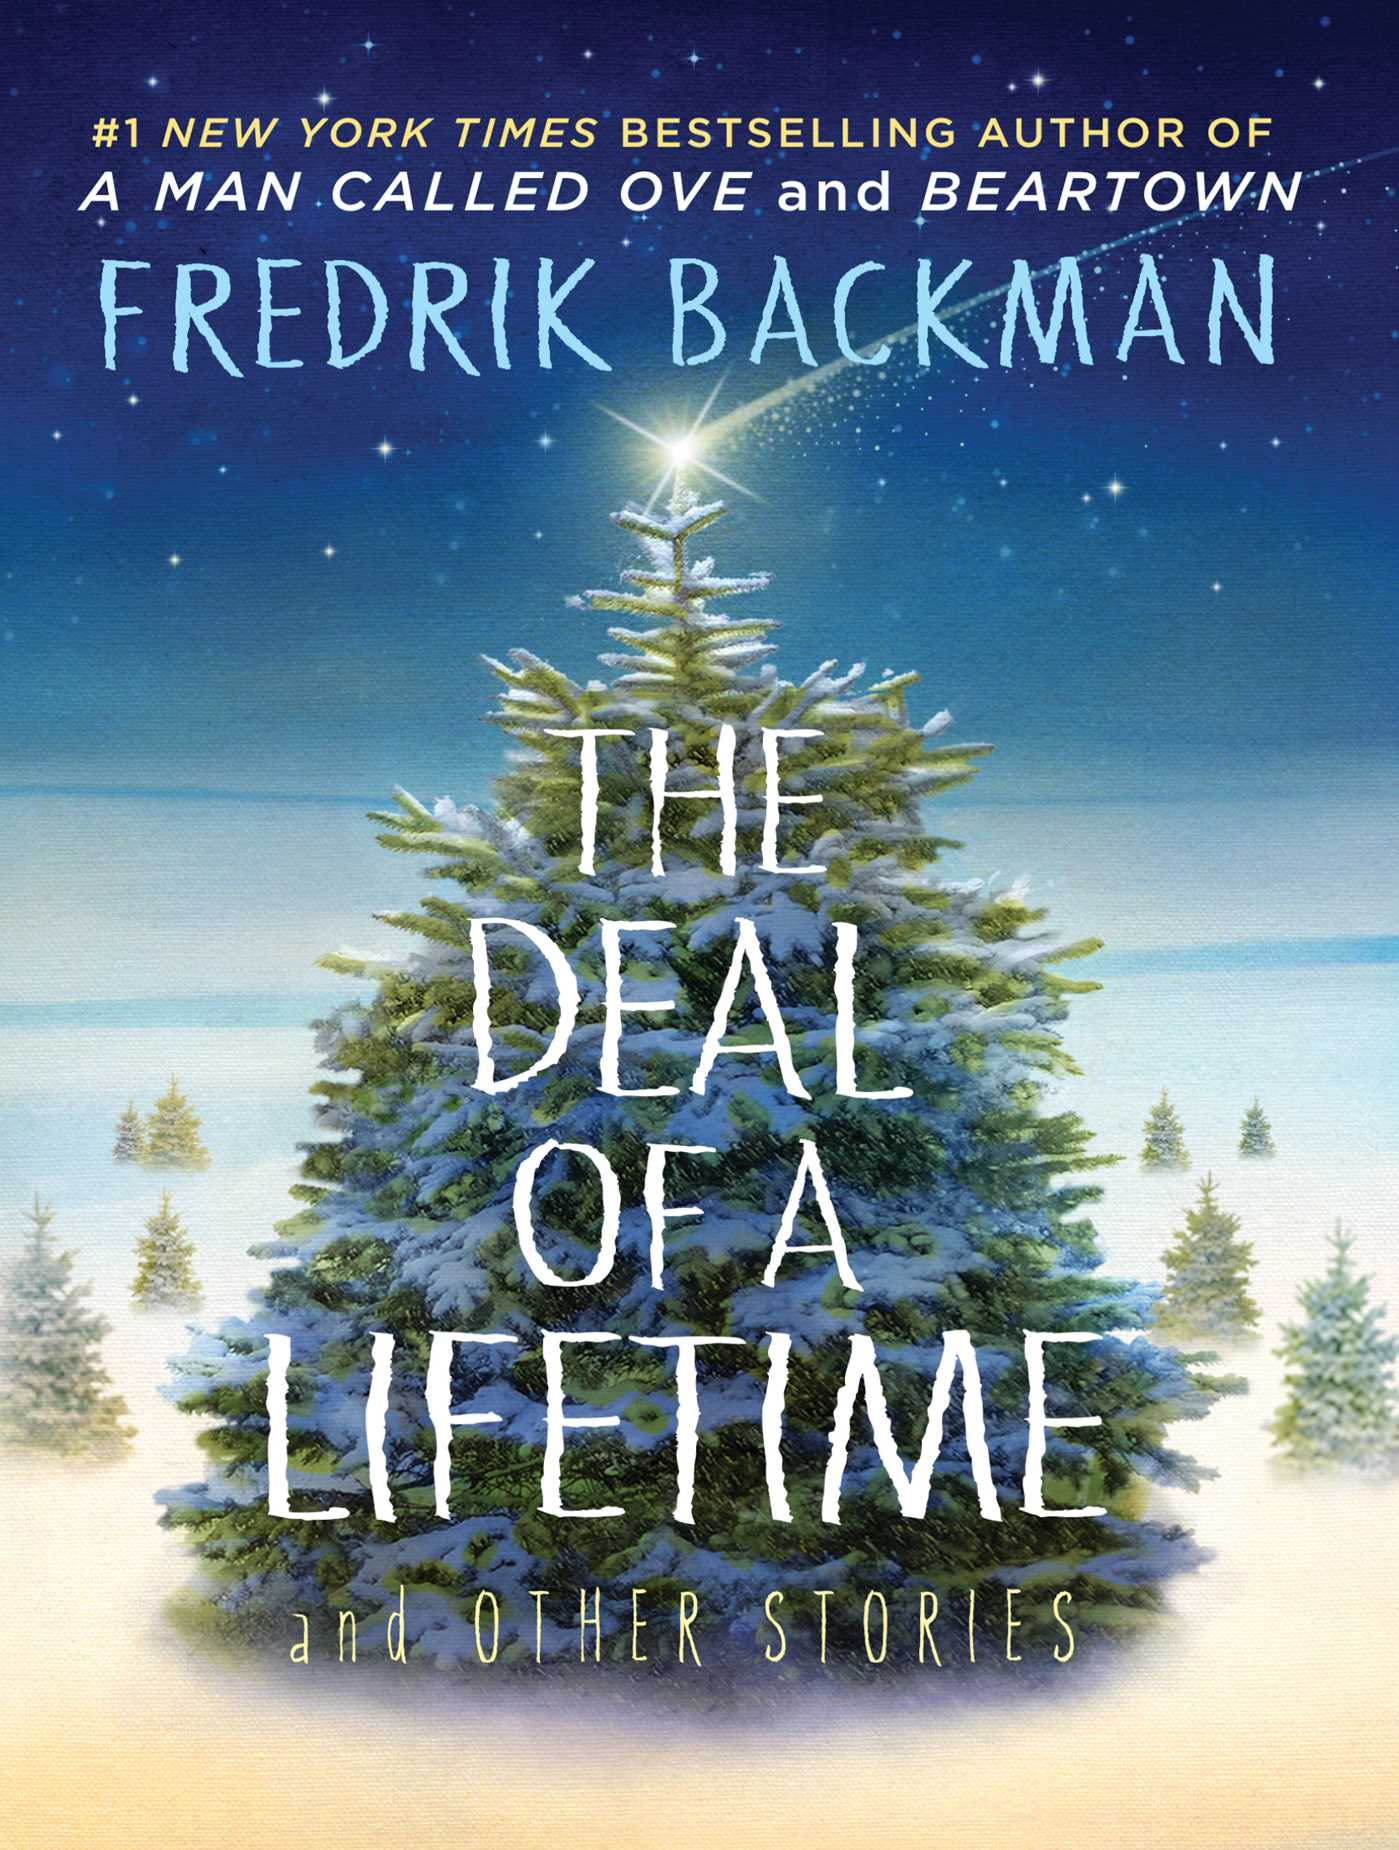 The deal of a lifetime and other stories 9781982103323 hr